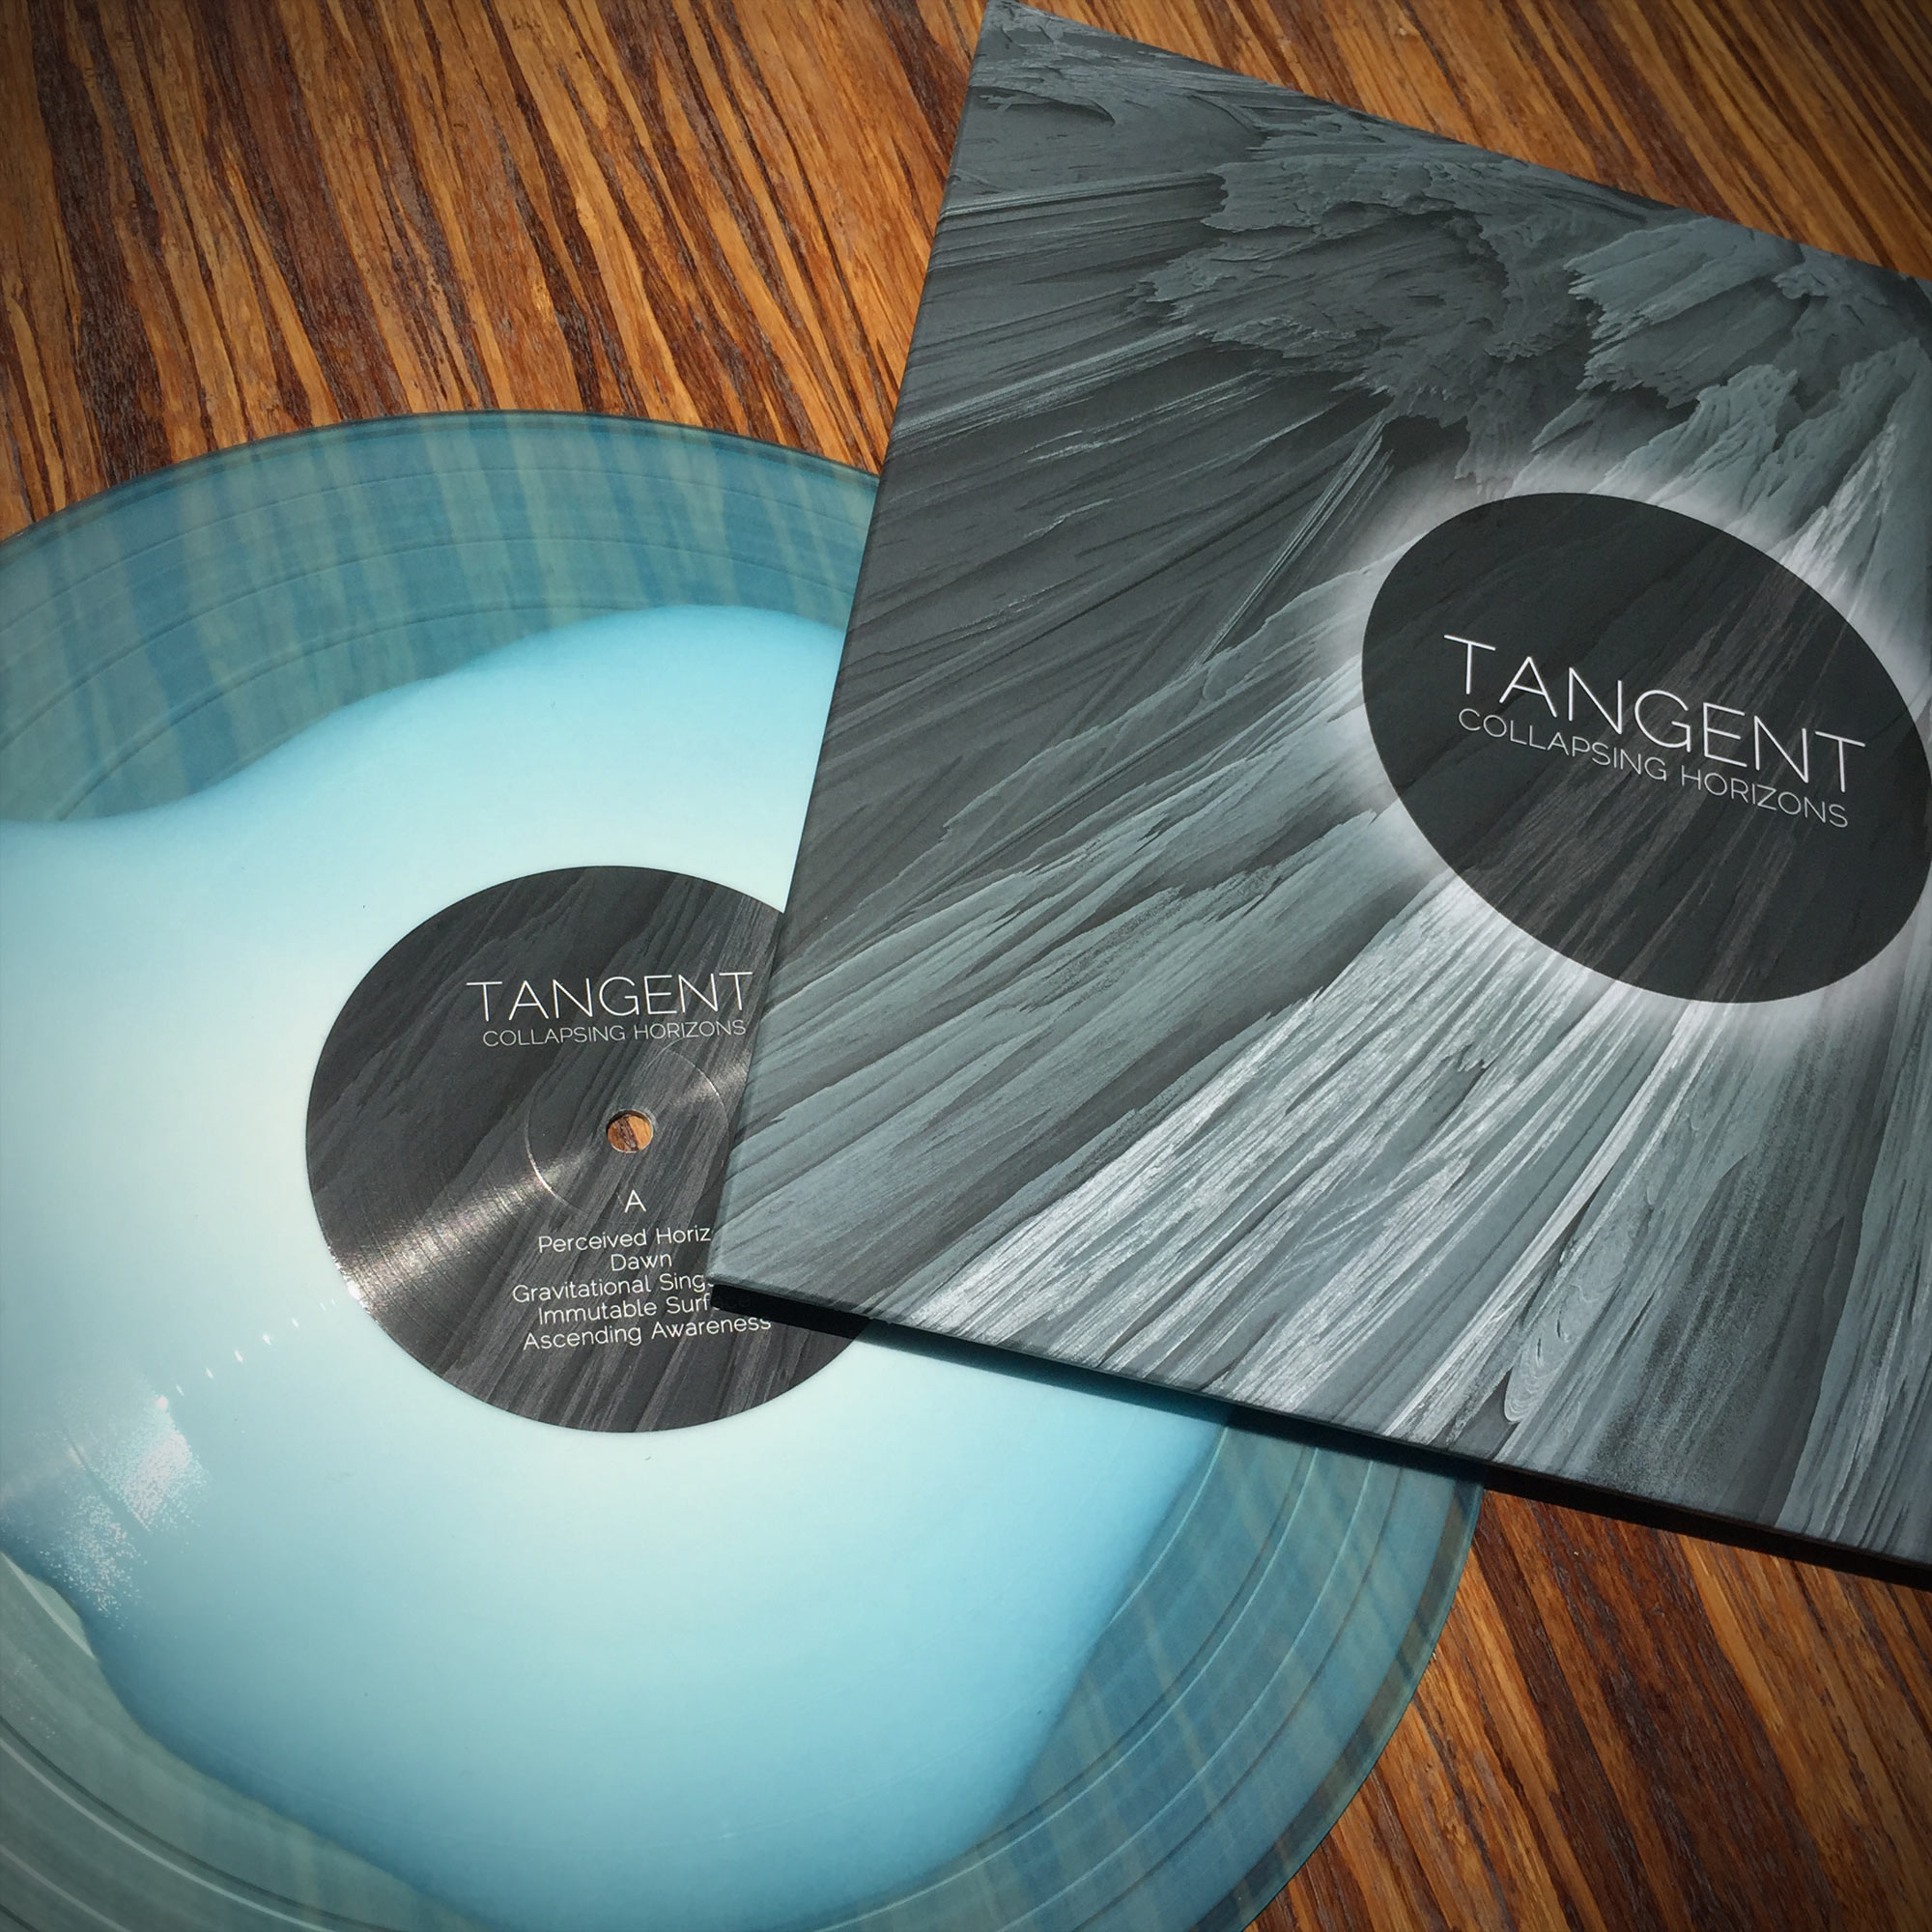 tangent - collapsing horizons - transparent blue w/wht lp